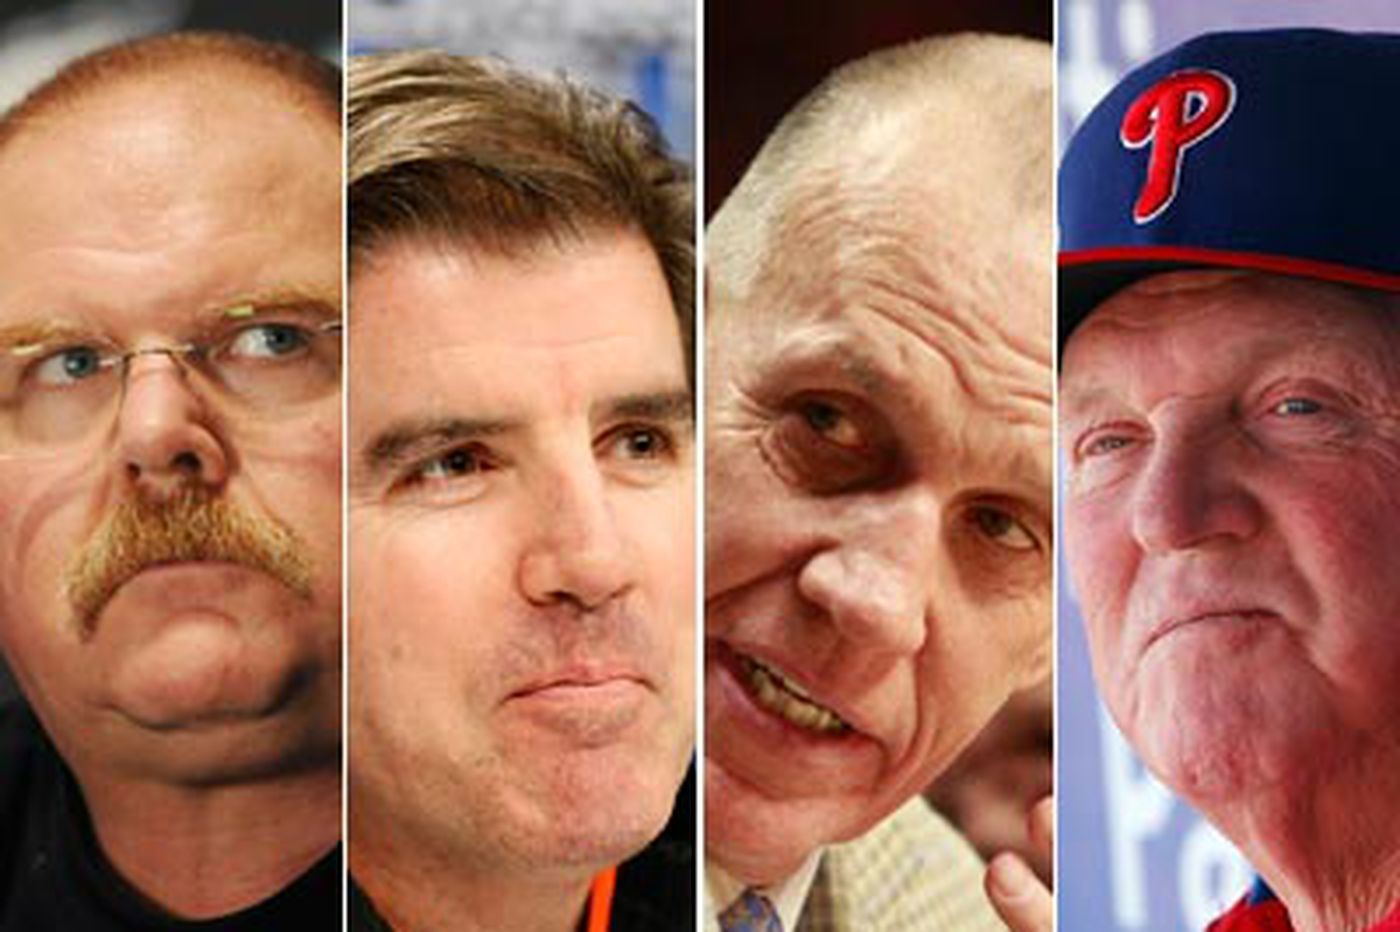 Bill Lyon: Four Philly coaches, by their words you shall know them